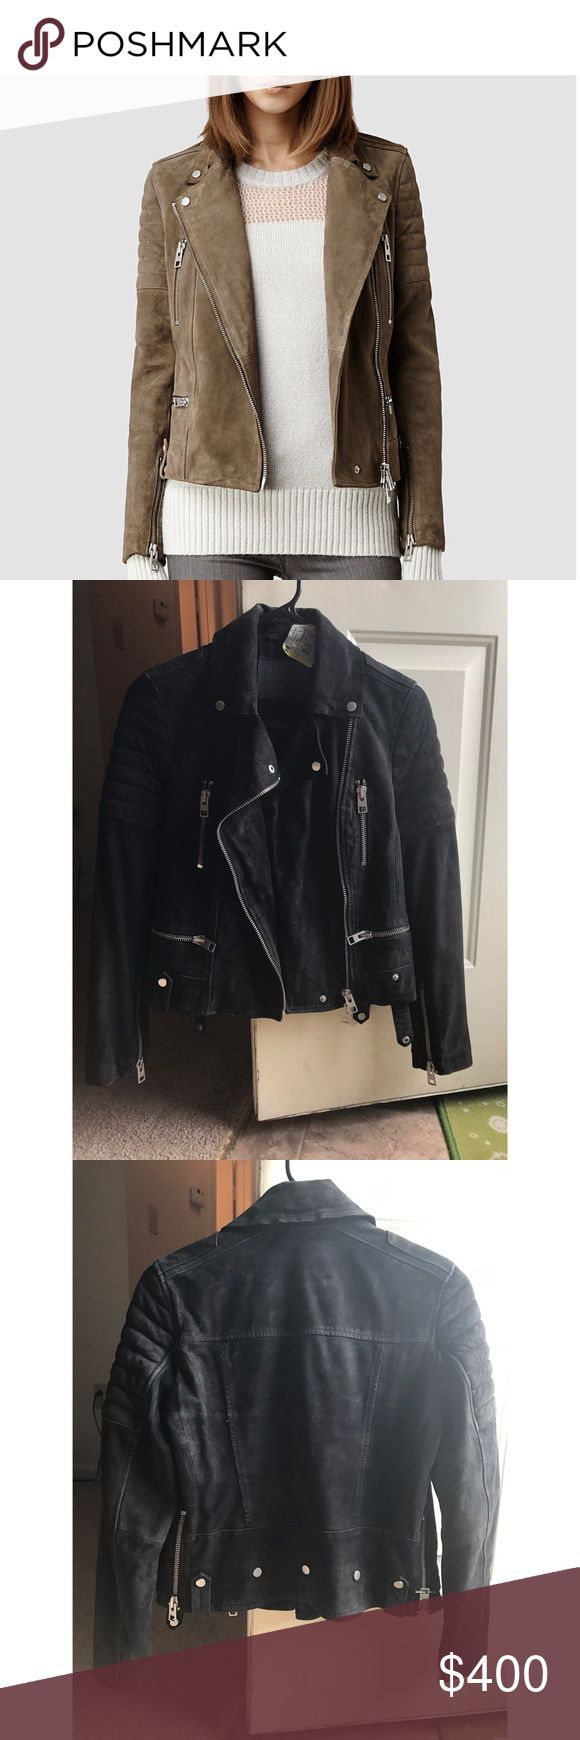 BLACK AllSaints biker jacket It was worn just a couple times and newly dry-cleaned by a specialty leather shop! No issues at all and from an animal and smoke free home. Shipped w/h tracking and in a waterproof bag. Silver headwear and size 4! Must sell as I am moving! All Saints Other